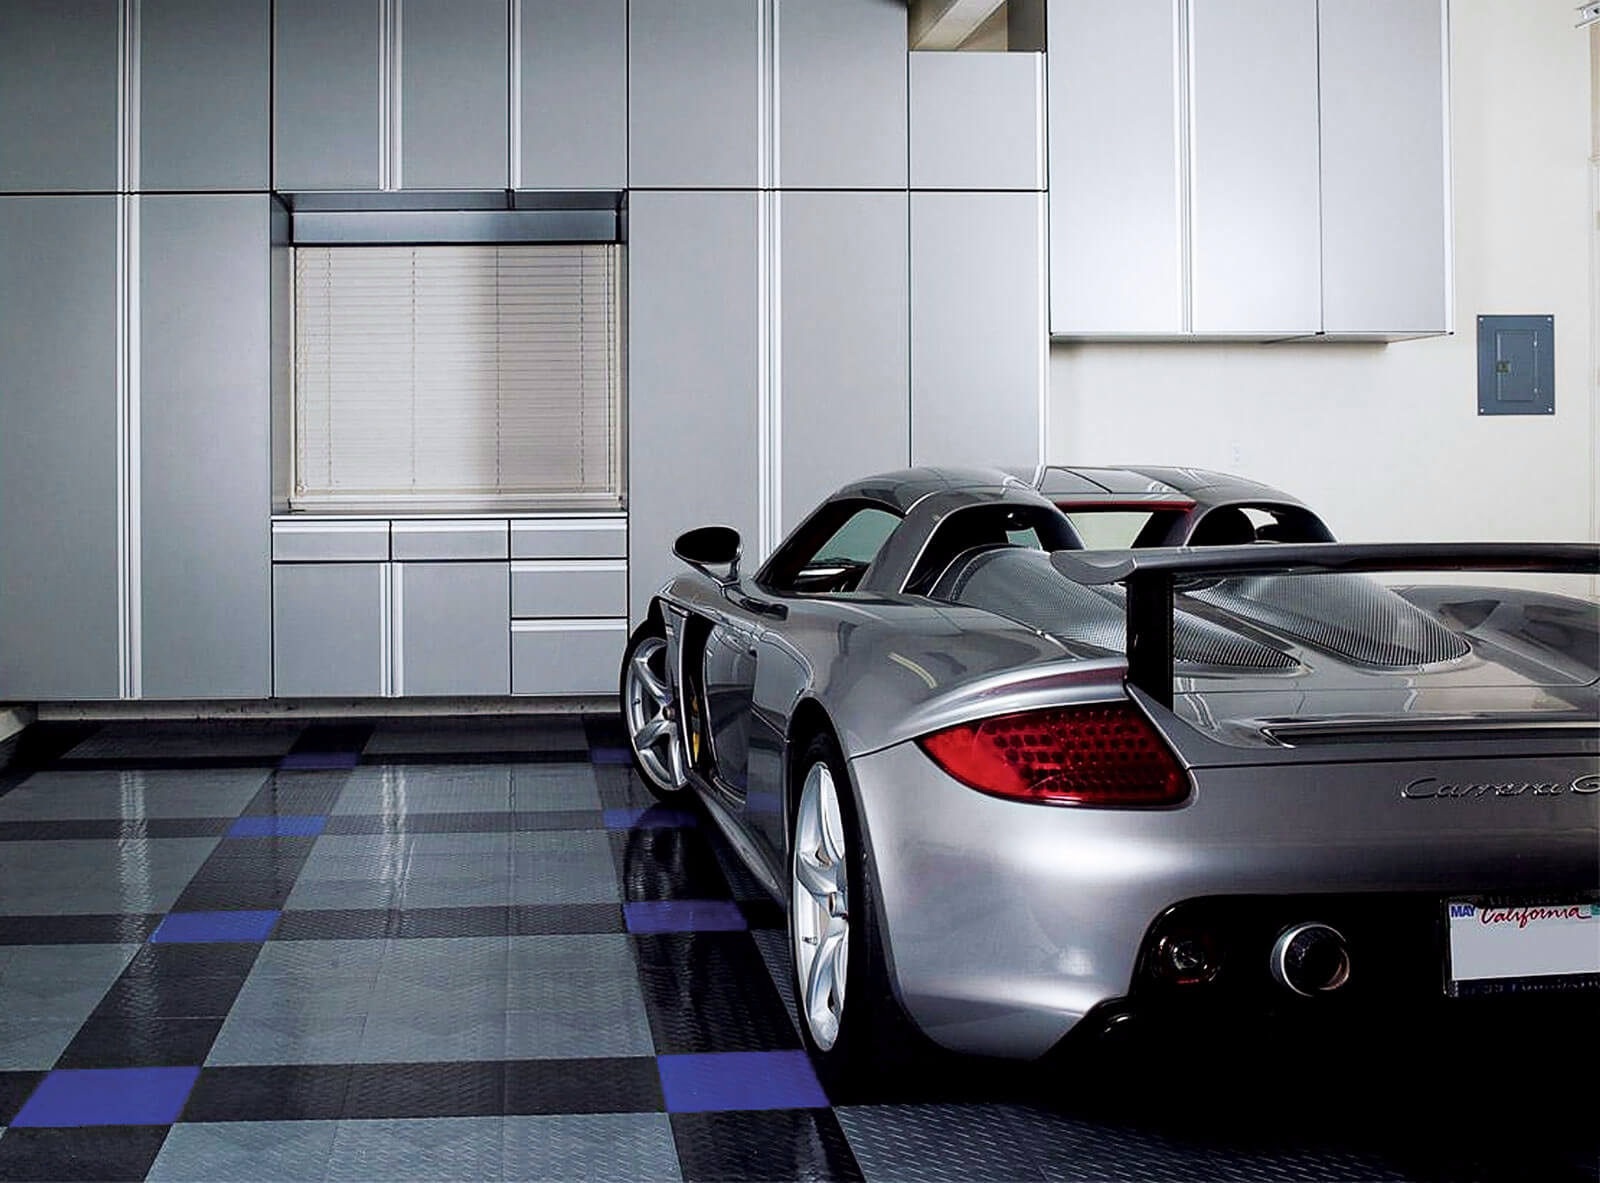 Carrera GT garage